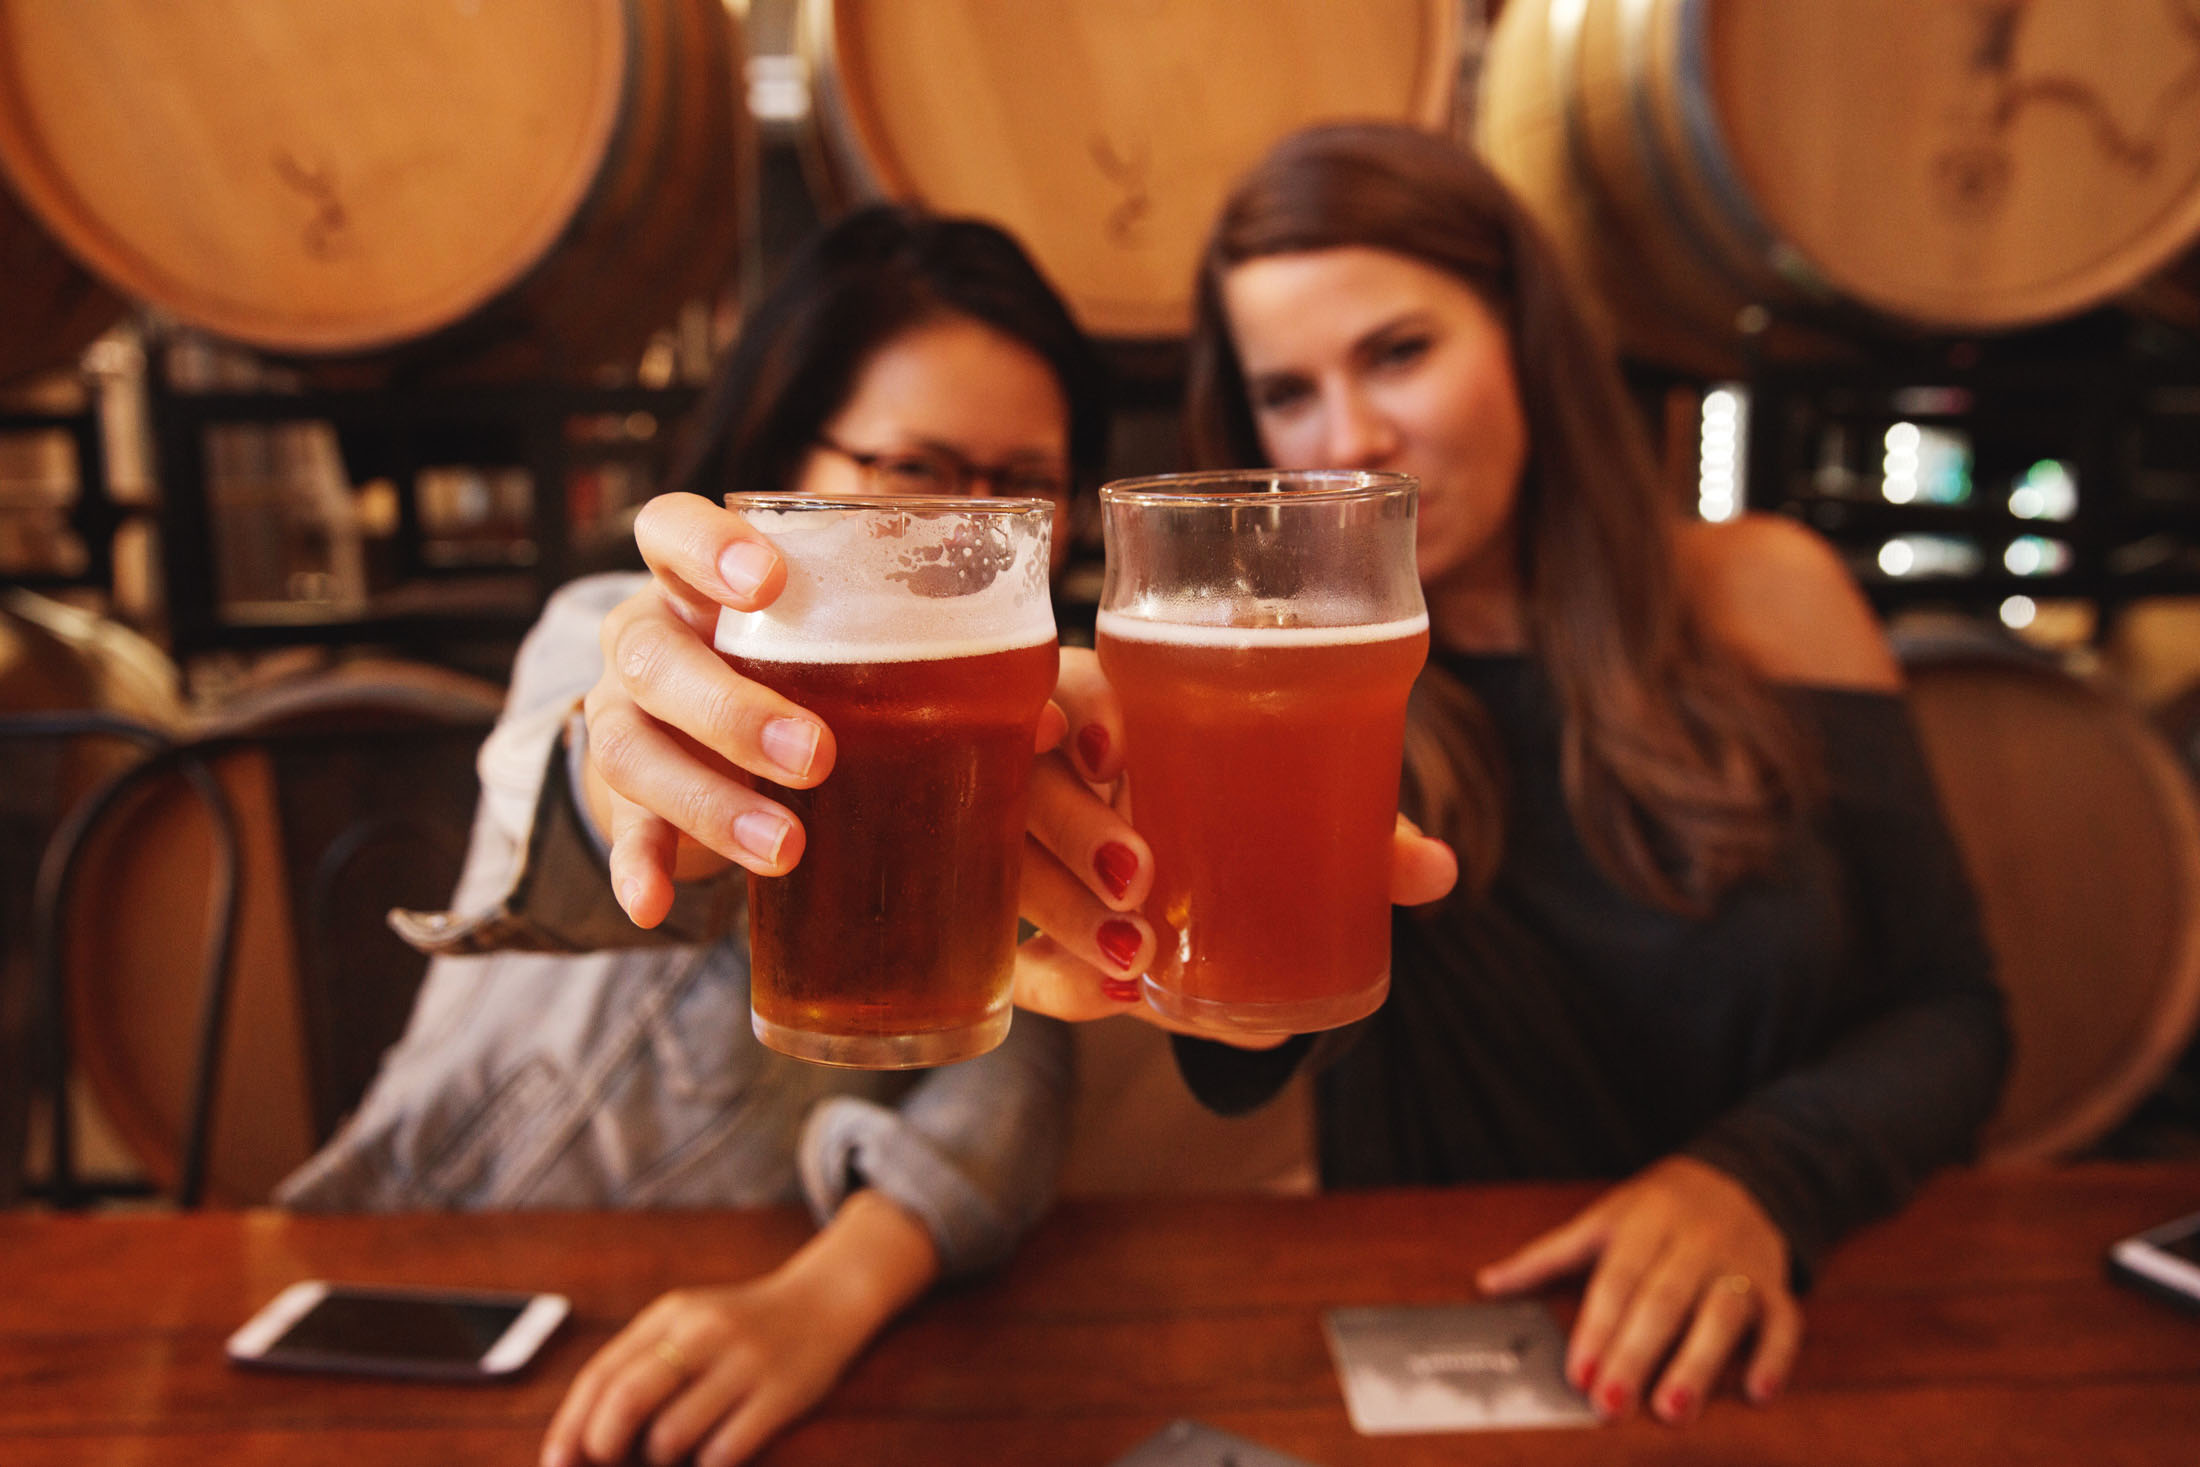 Two woman toasting with beers in craft brewery in Vancouver